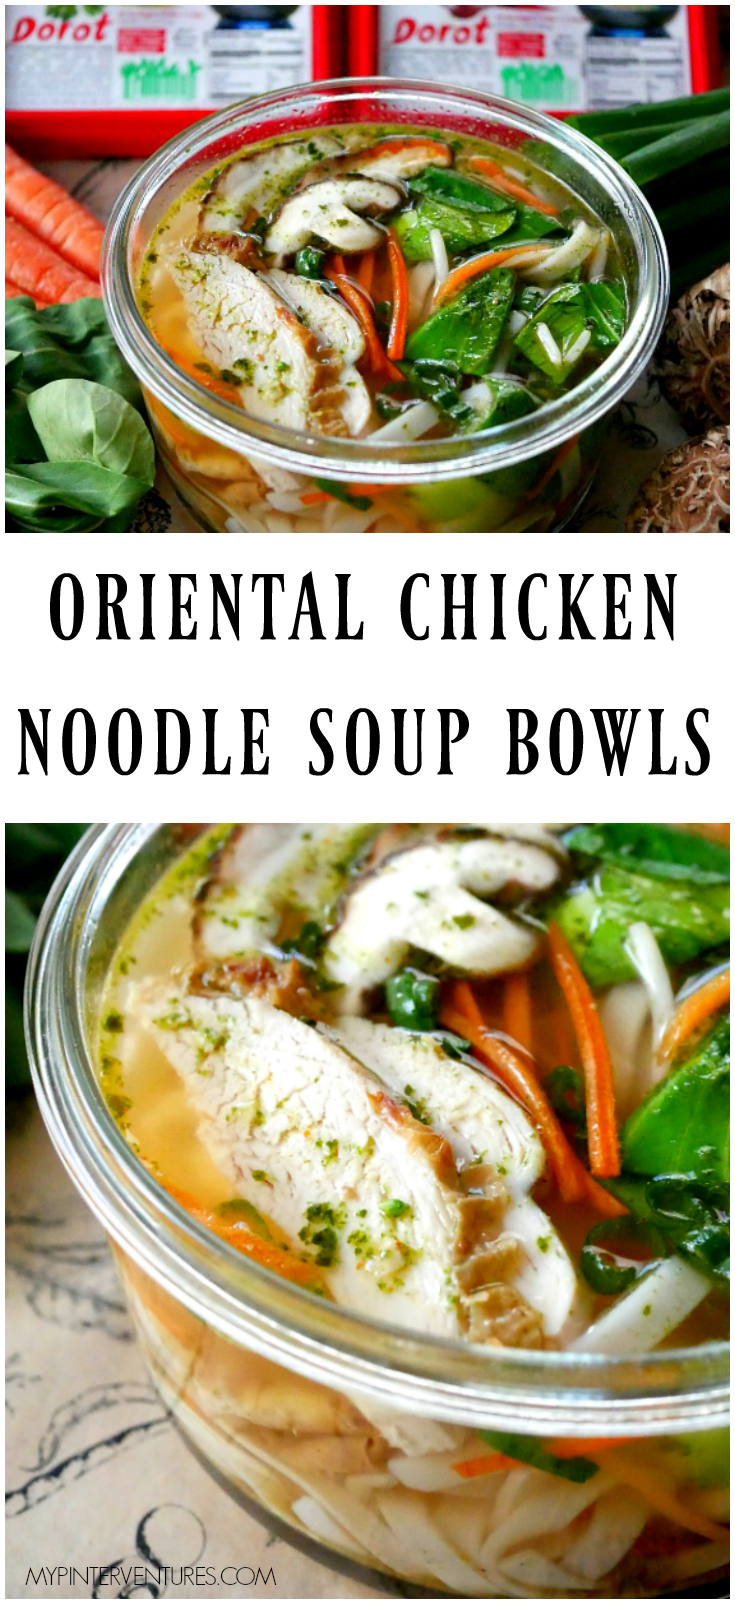 Individual Oriental Chicken Noodle Soup Bowls #ad #ElevateYourPlate